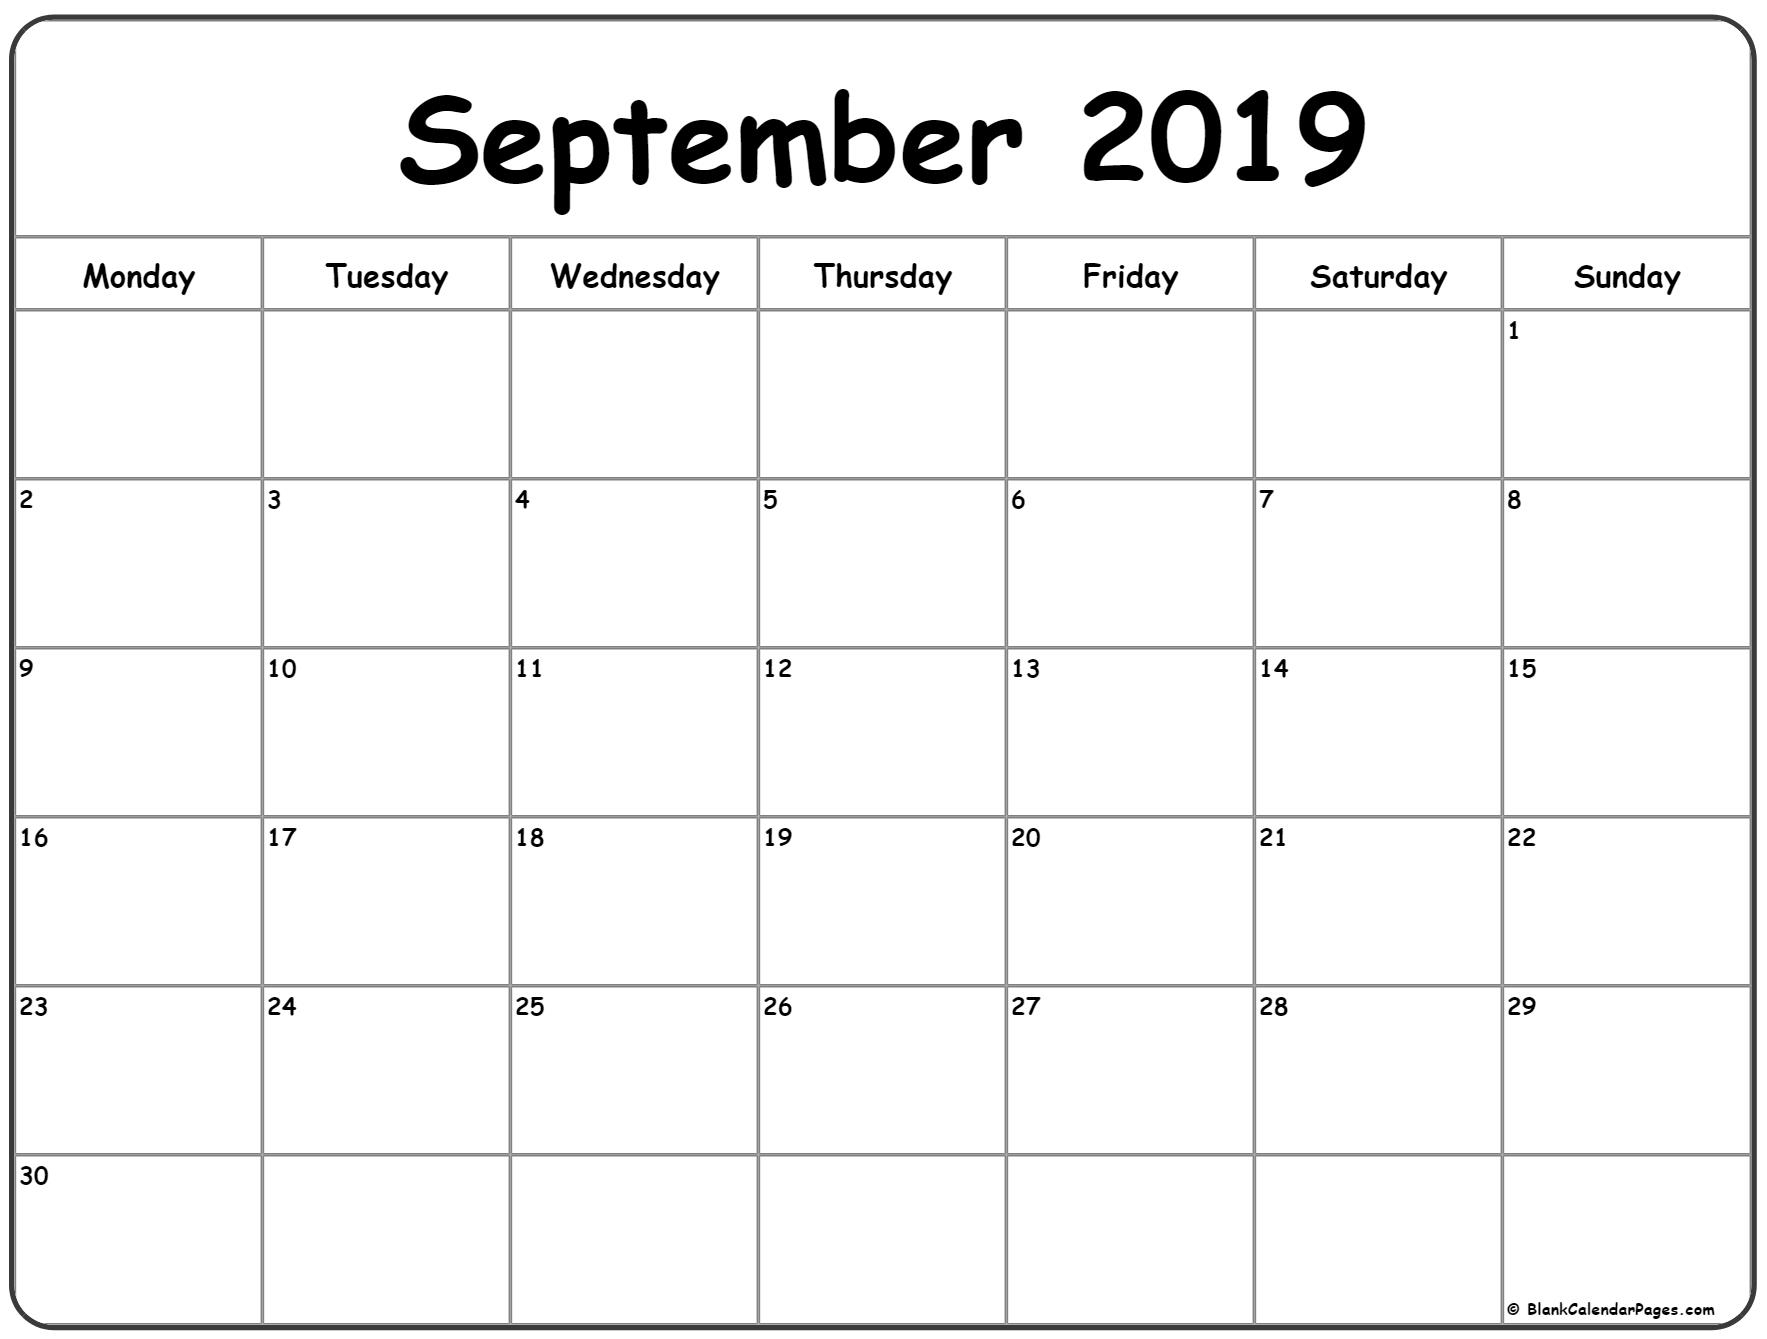 September 2019 Monday Calendar | Monday To Sunday